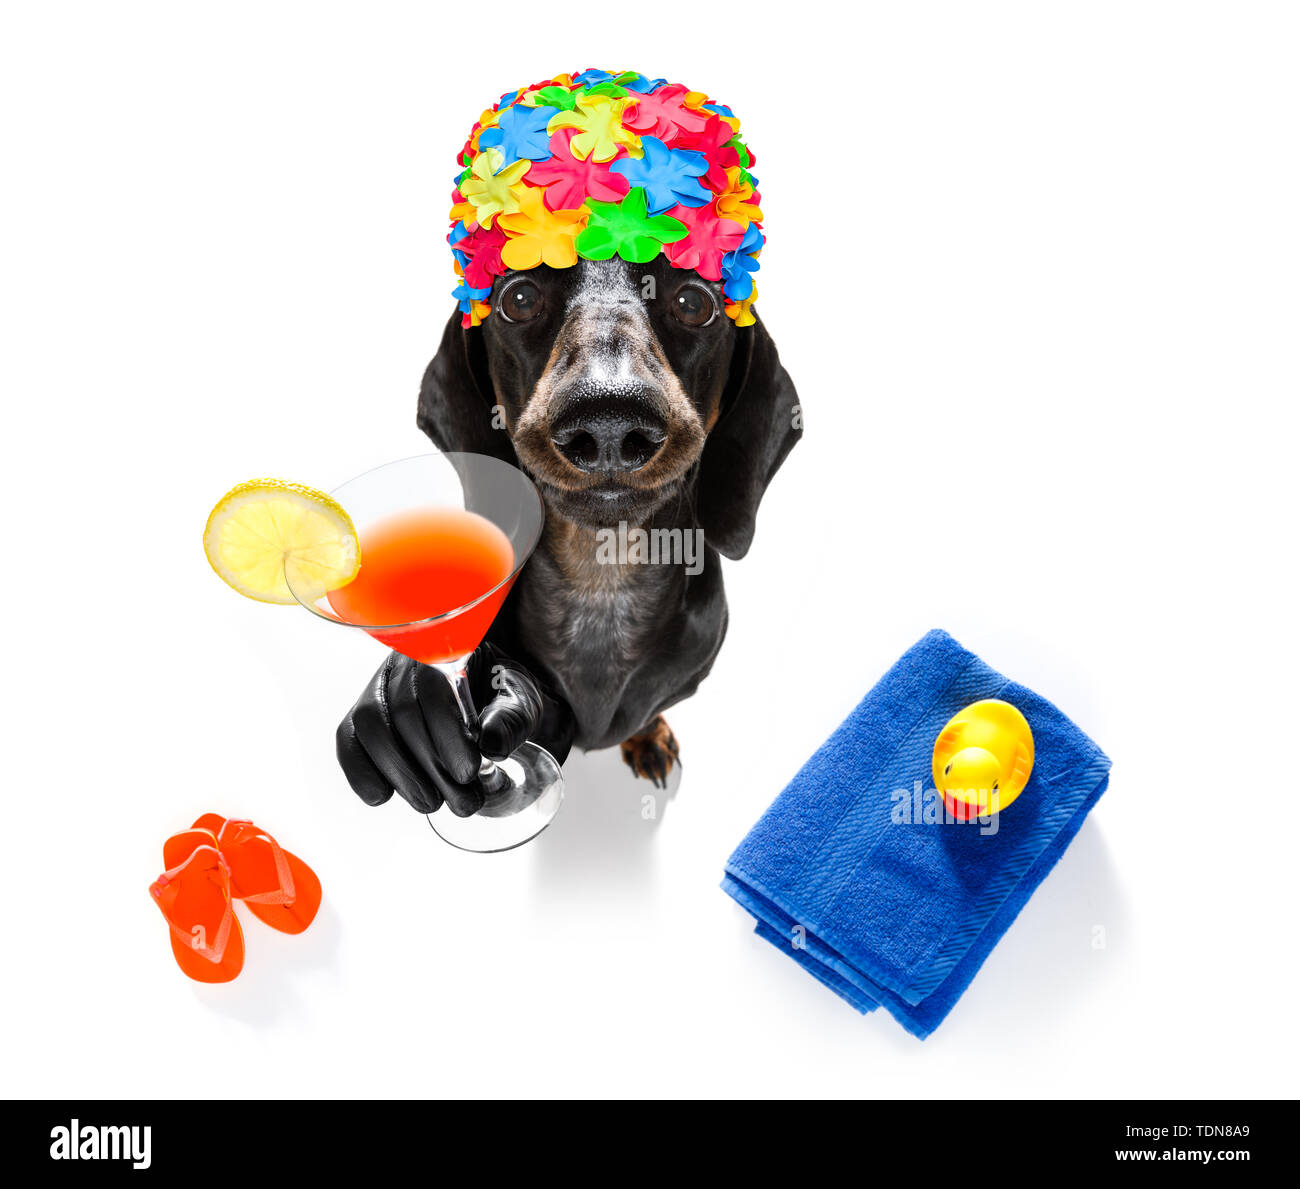 summer vacation sausage dachshund dog with rubber duck and flip flops wearing bath cap, isolated on white background drinking a cocktail - Stock Image